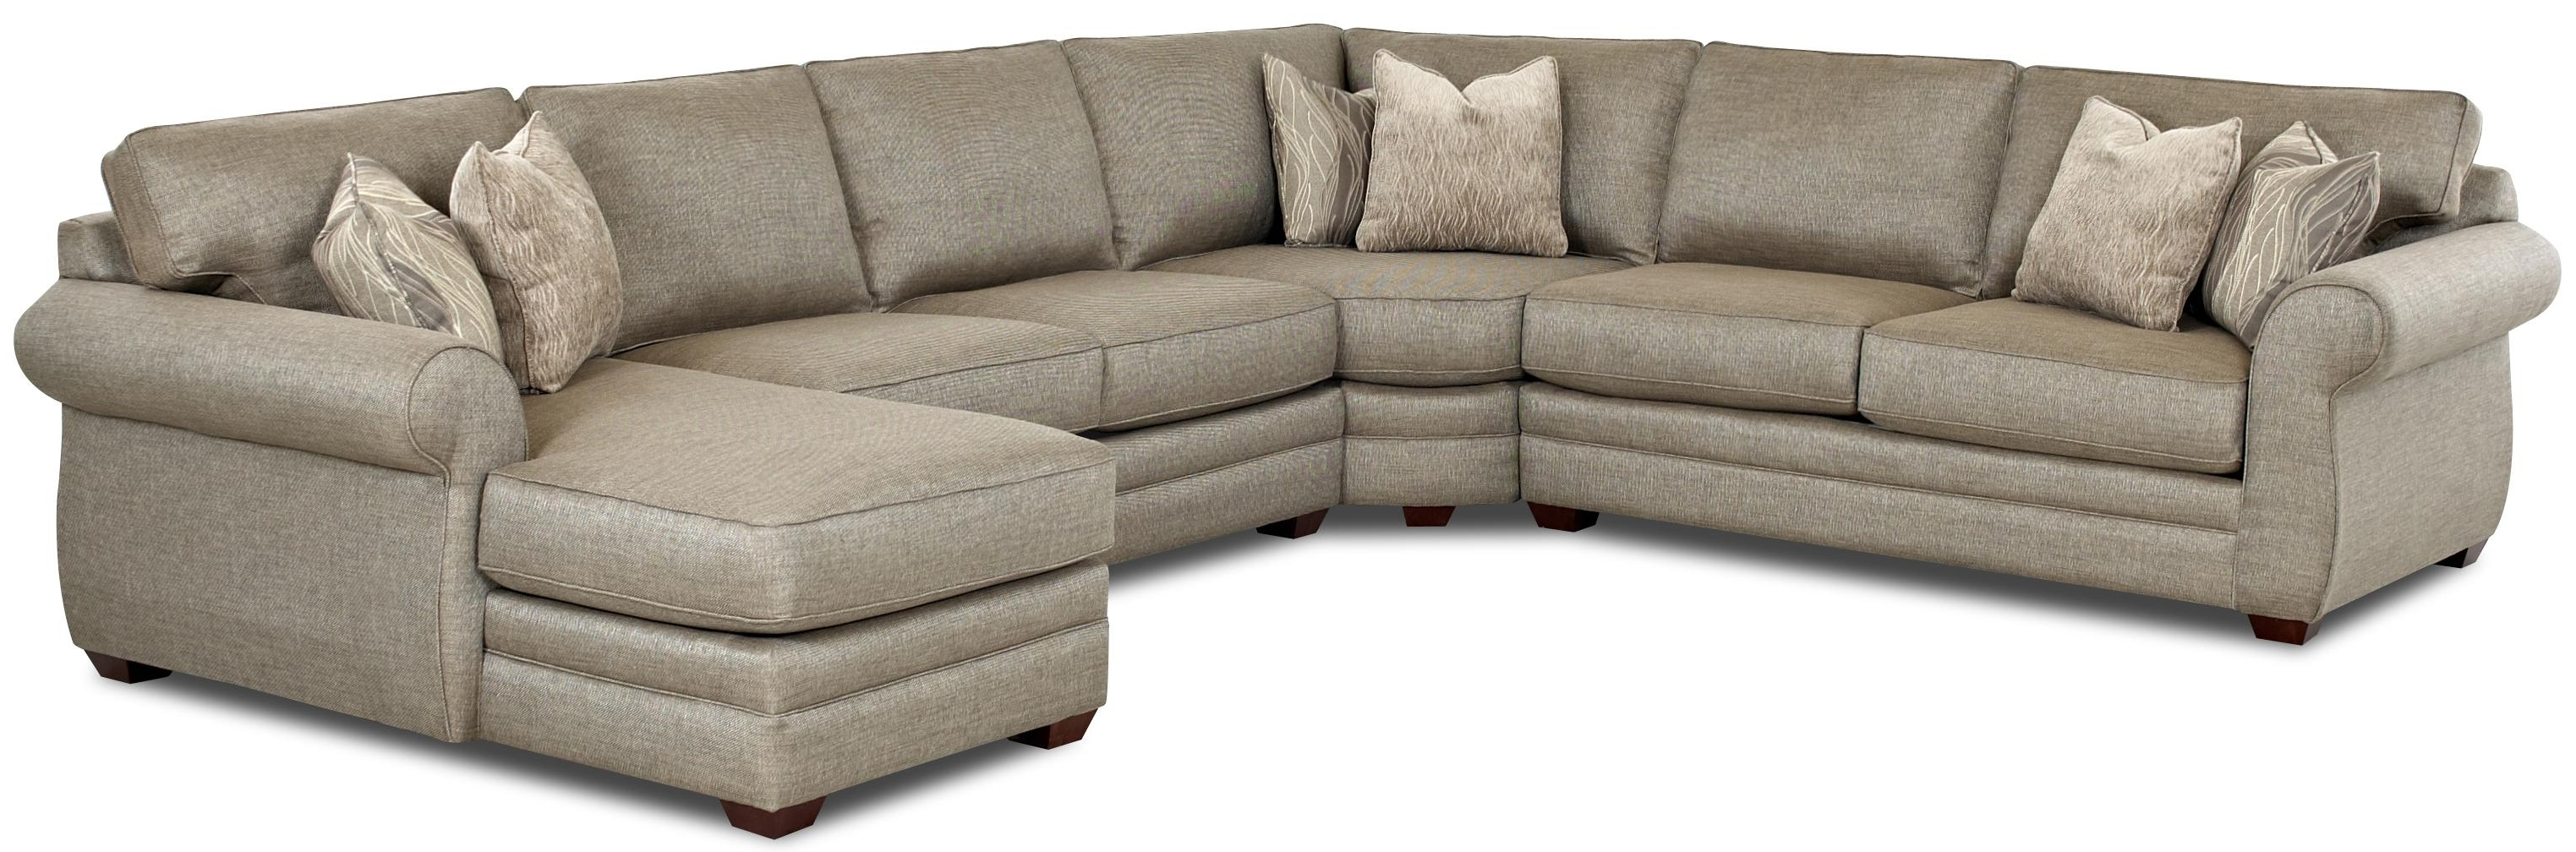 Most Recent Killeen Tx Sectional Sofas Inside Klaussner Clanton Transitional Sectional Sofa With Right Chaise (View 8 of 20)